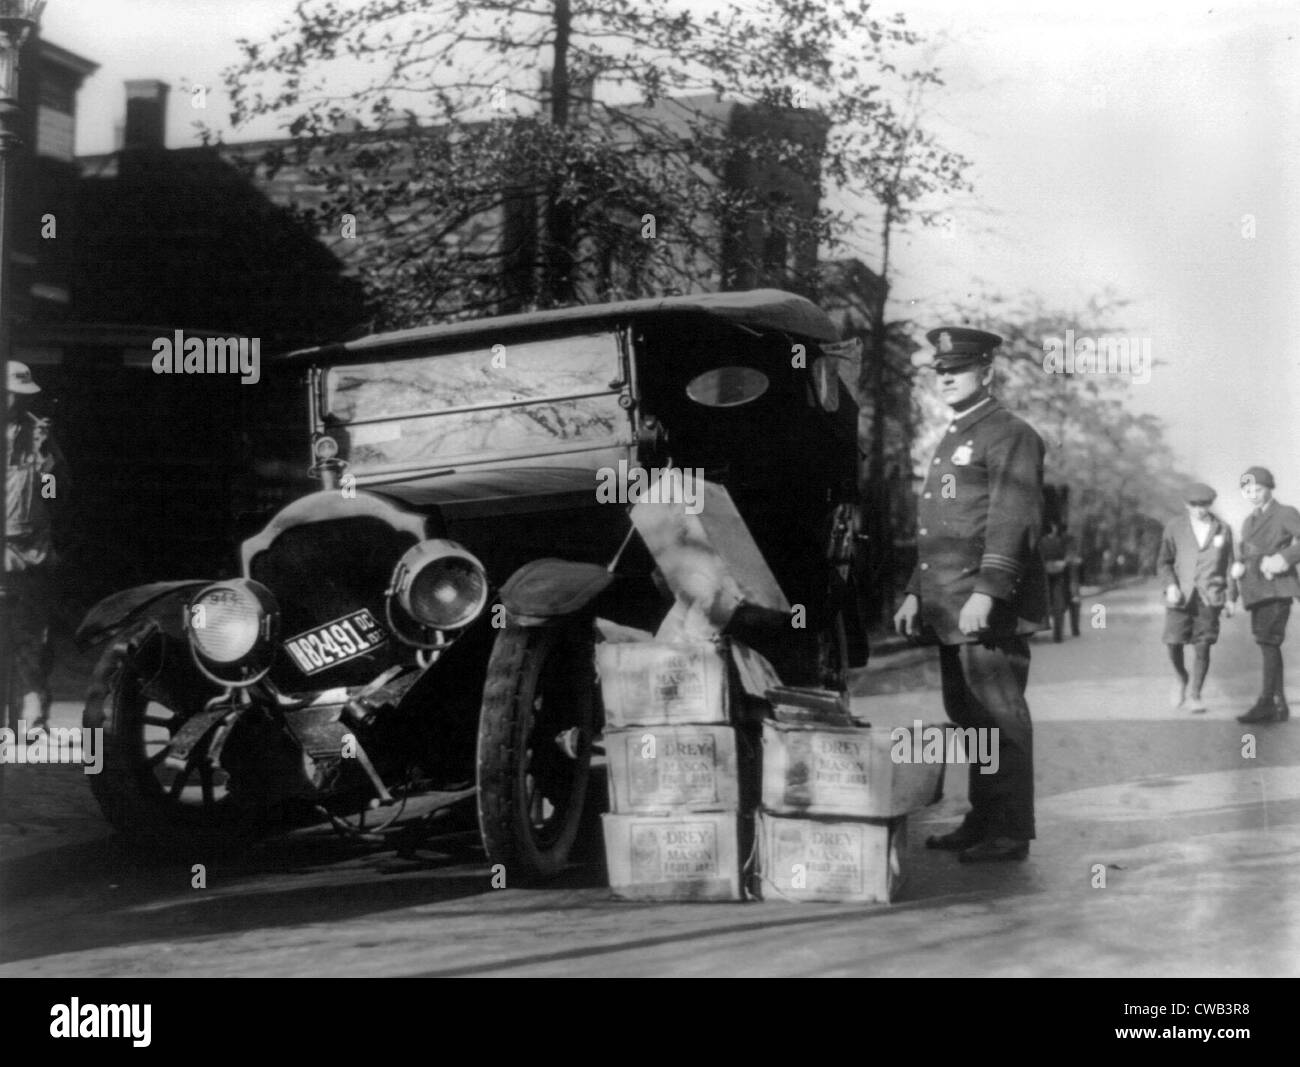 Prohibition, a policeman standing alongside a wrecked car and cases of moonshine, November 16, 1922. - Stock Image